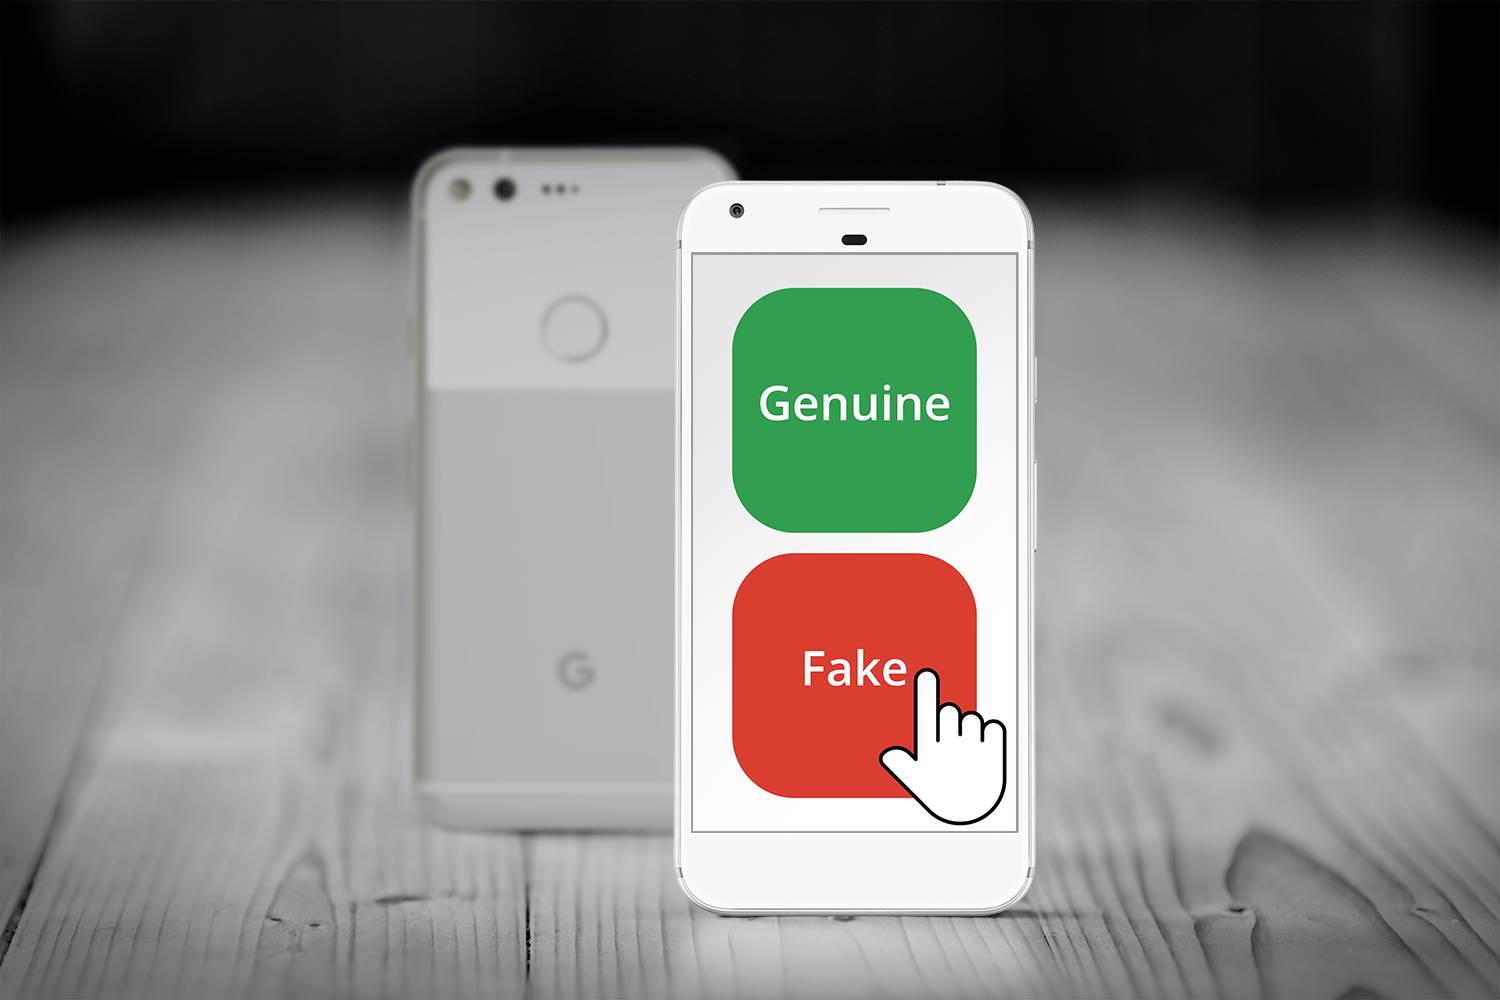 Now for a fake Face App – Gadget